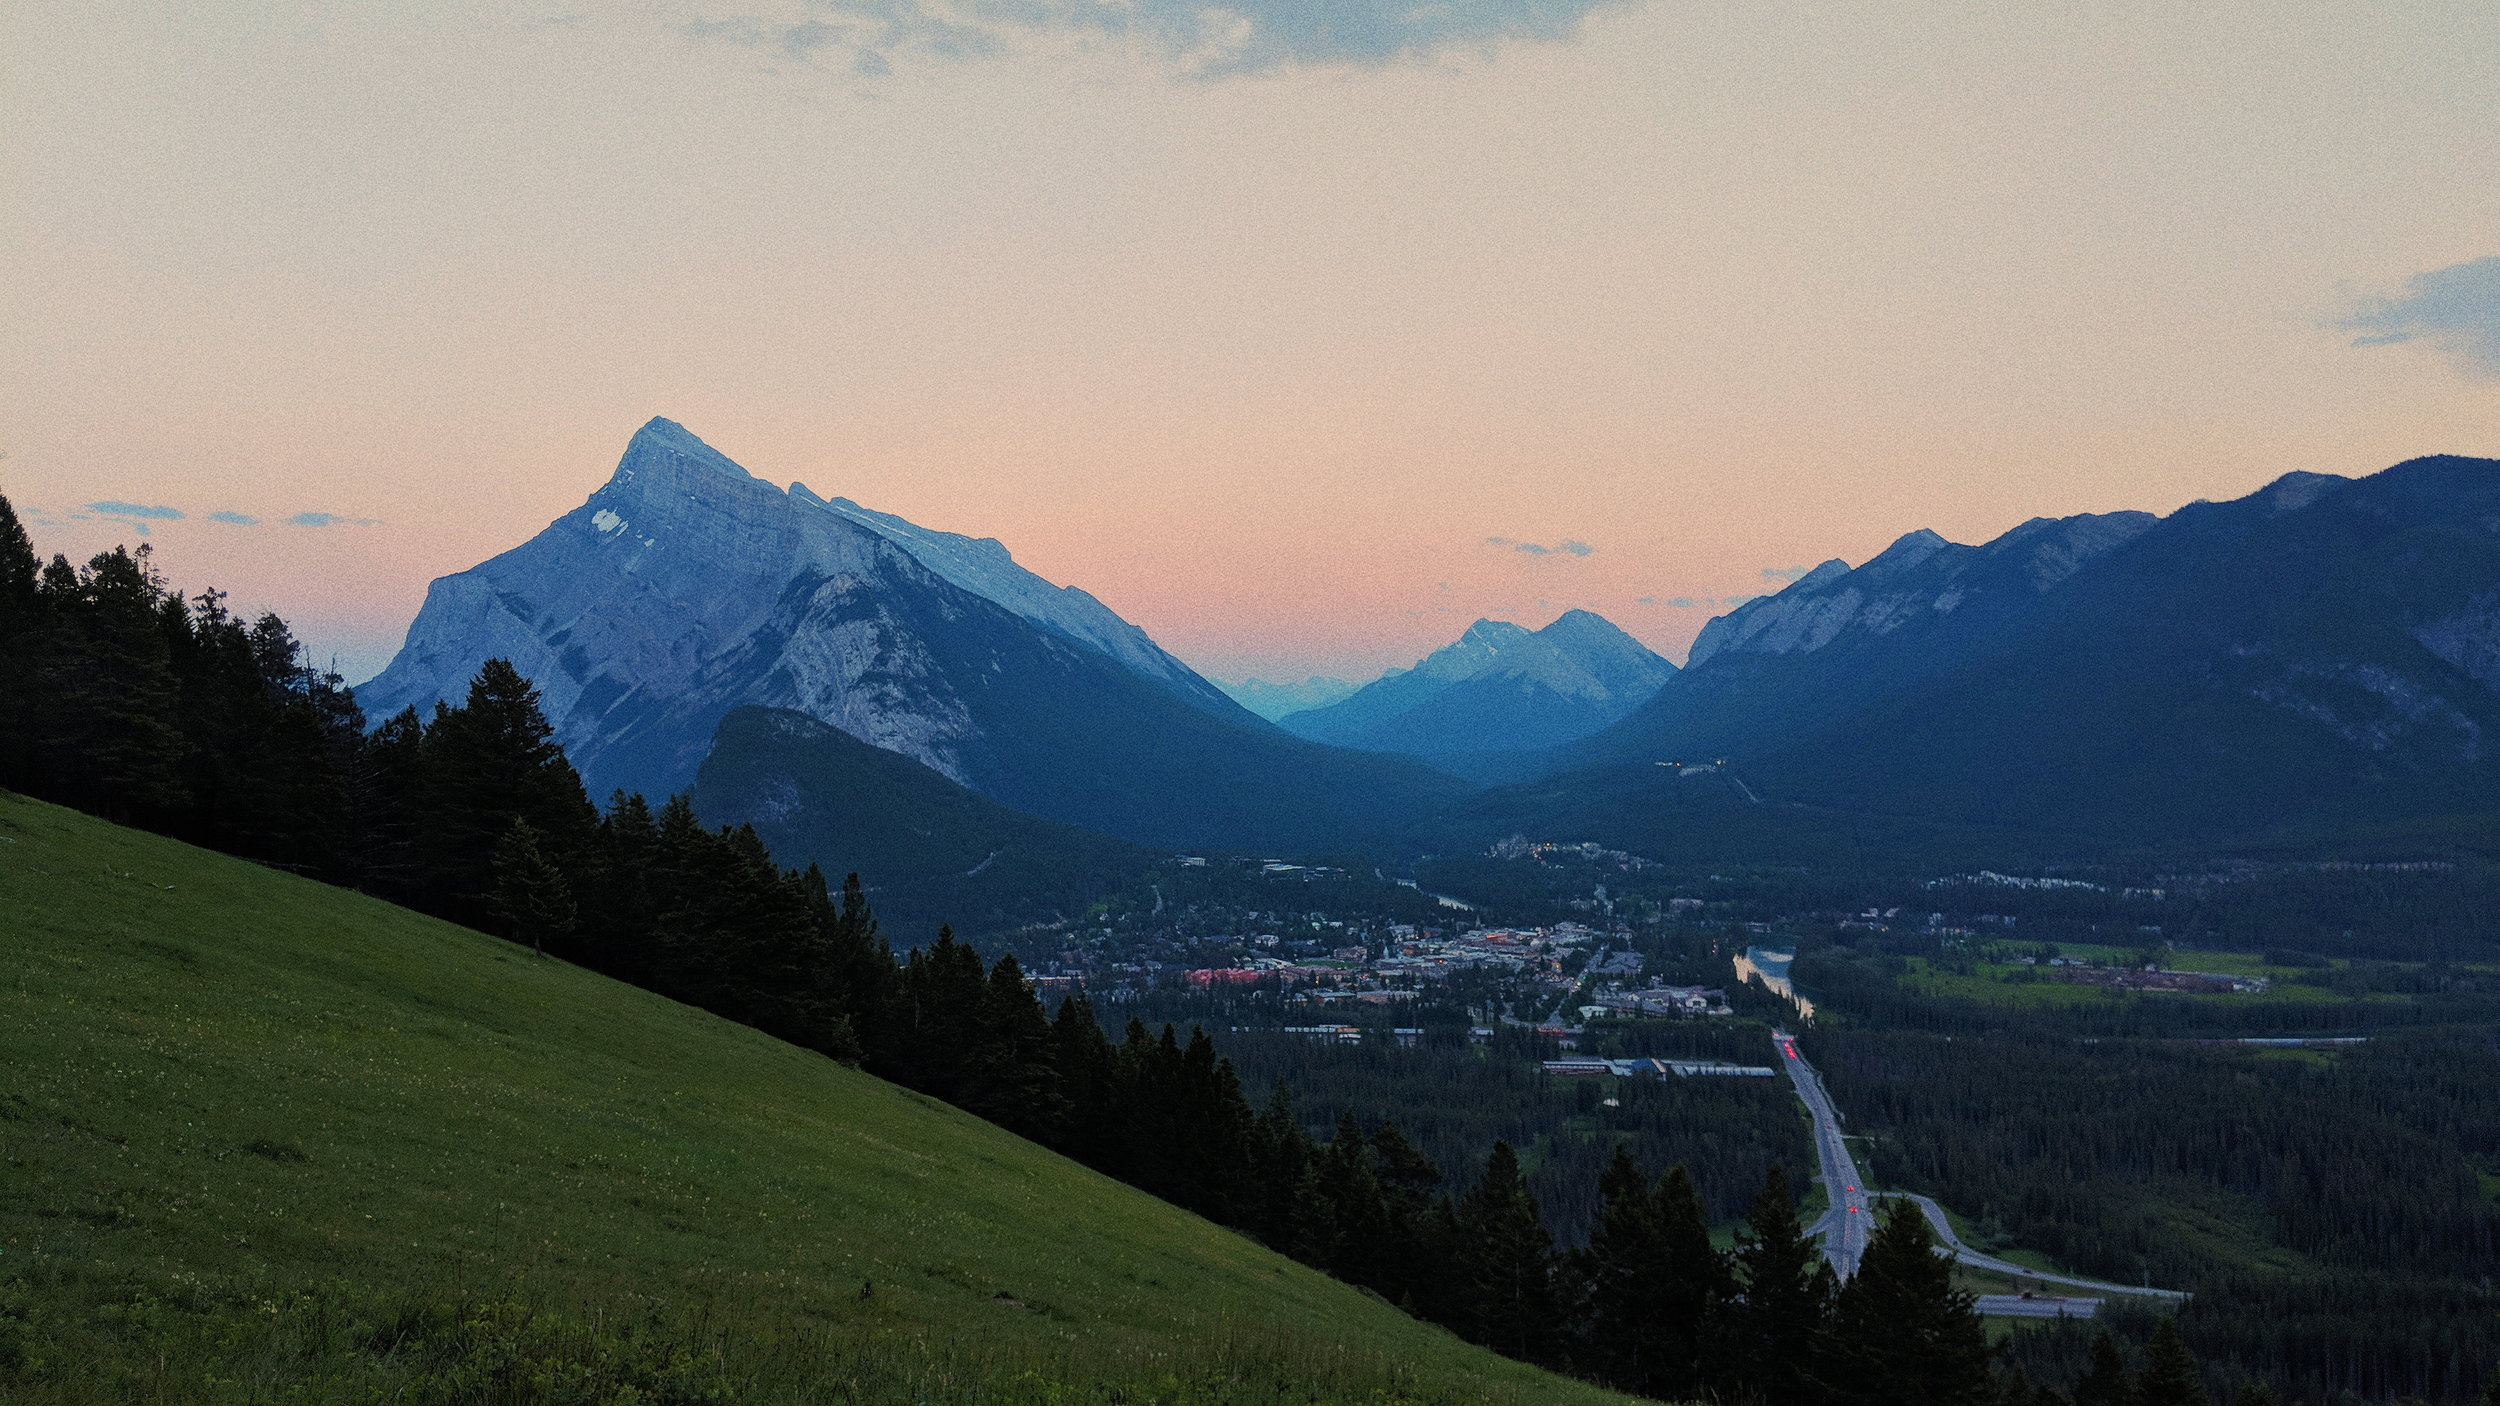 Sunset over the town of Banff